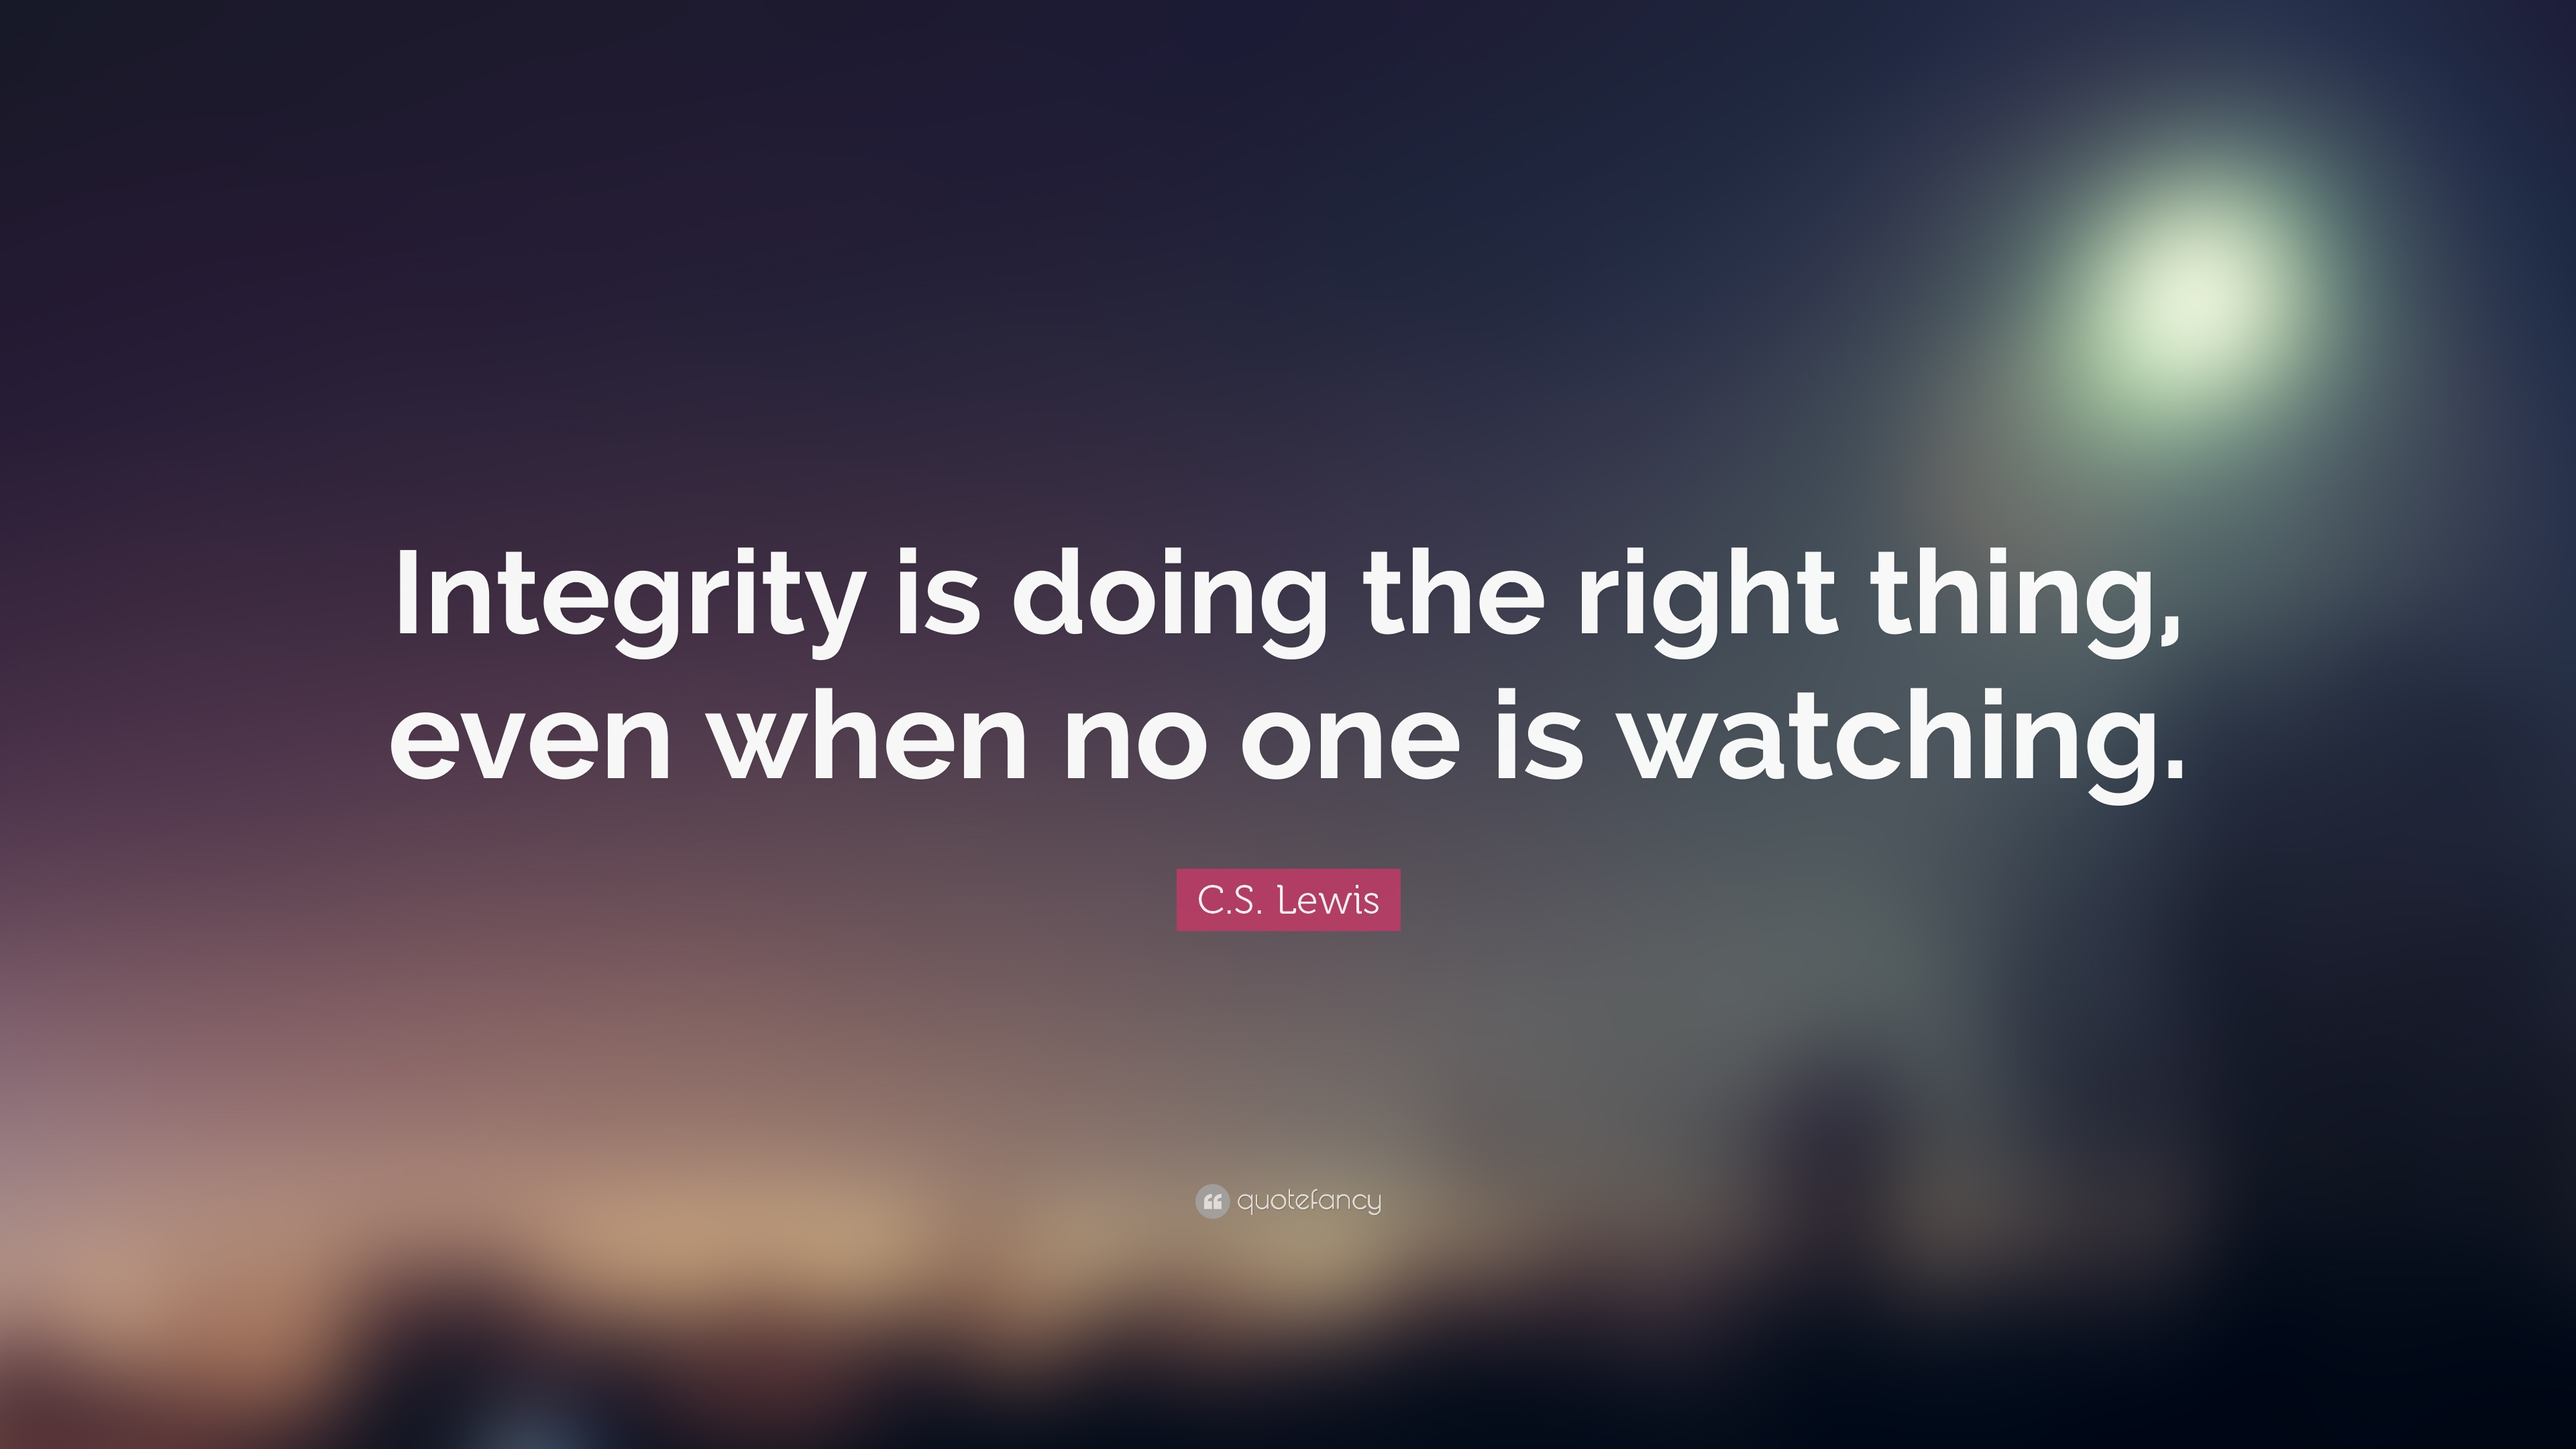 16910 C S Lewis Quote Integrity Is Doing The Right Thing Even When